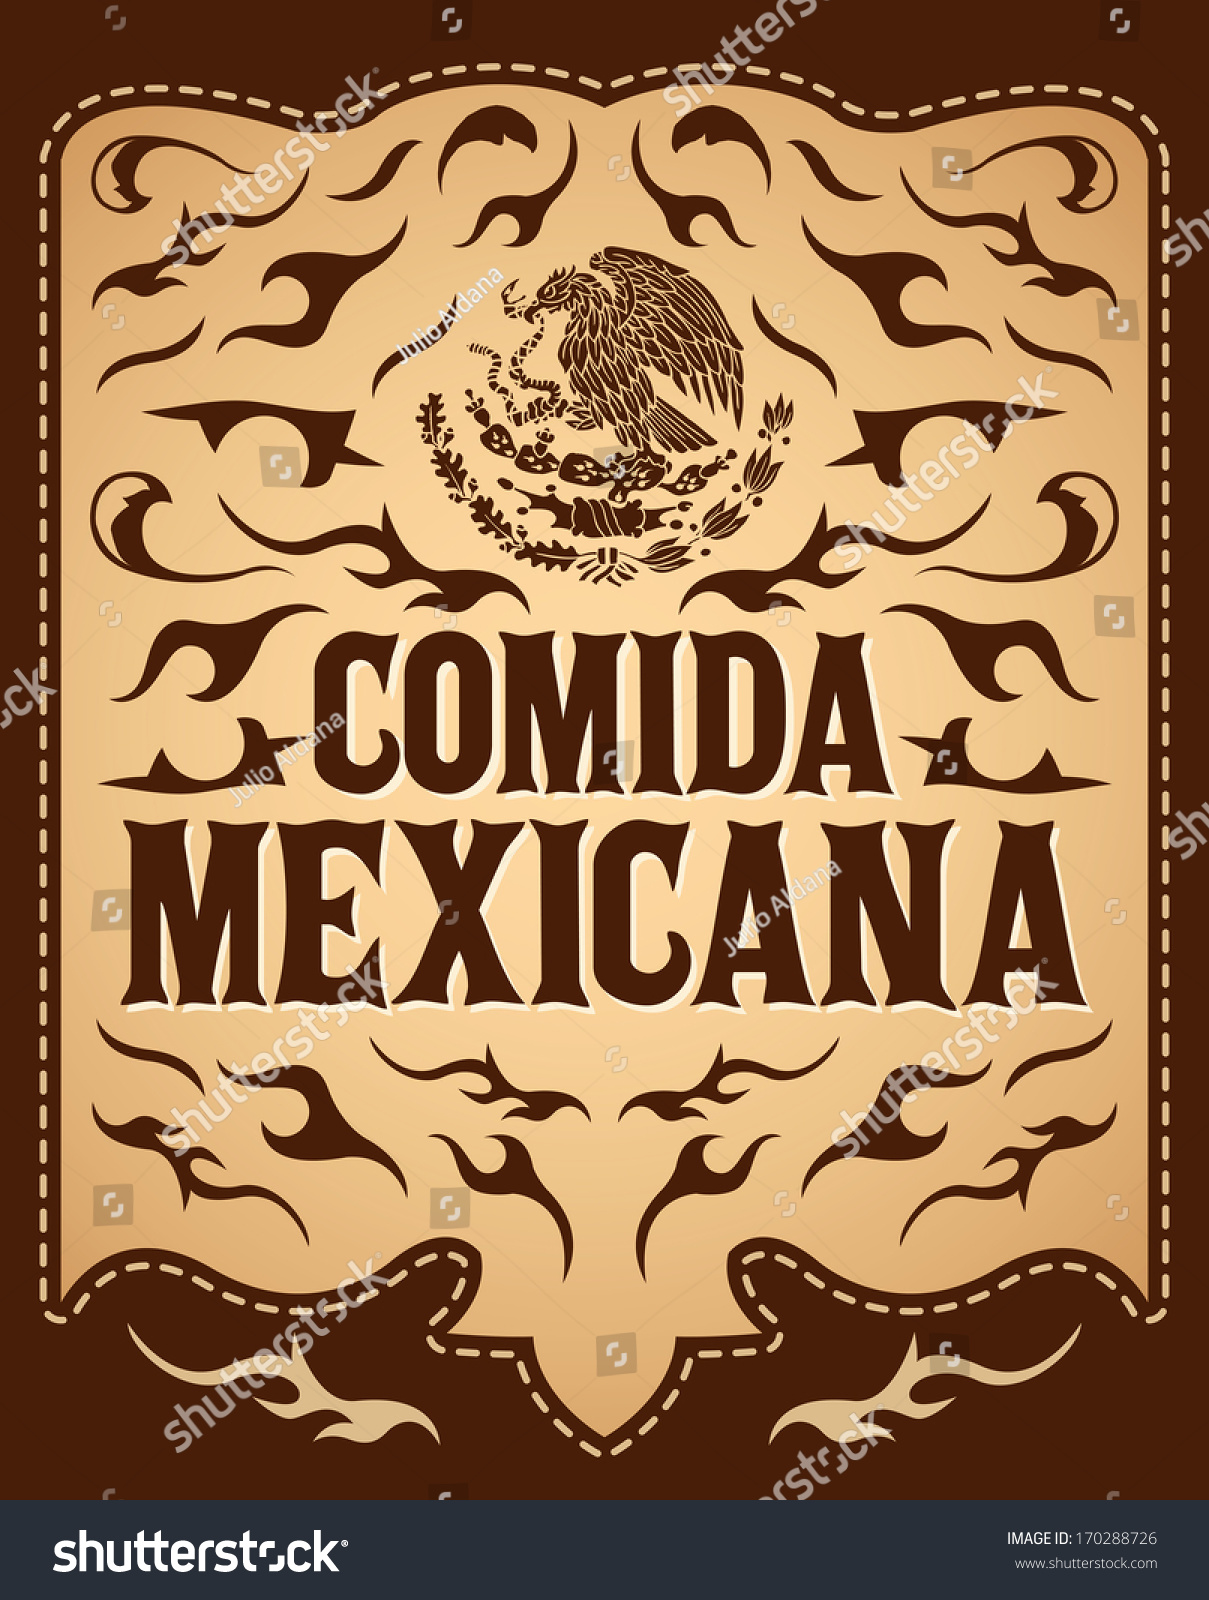 comida mexicana mexican food spanish text stock vector (royalty free